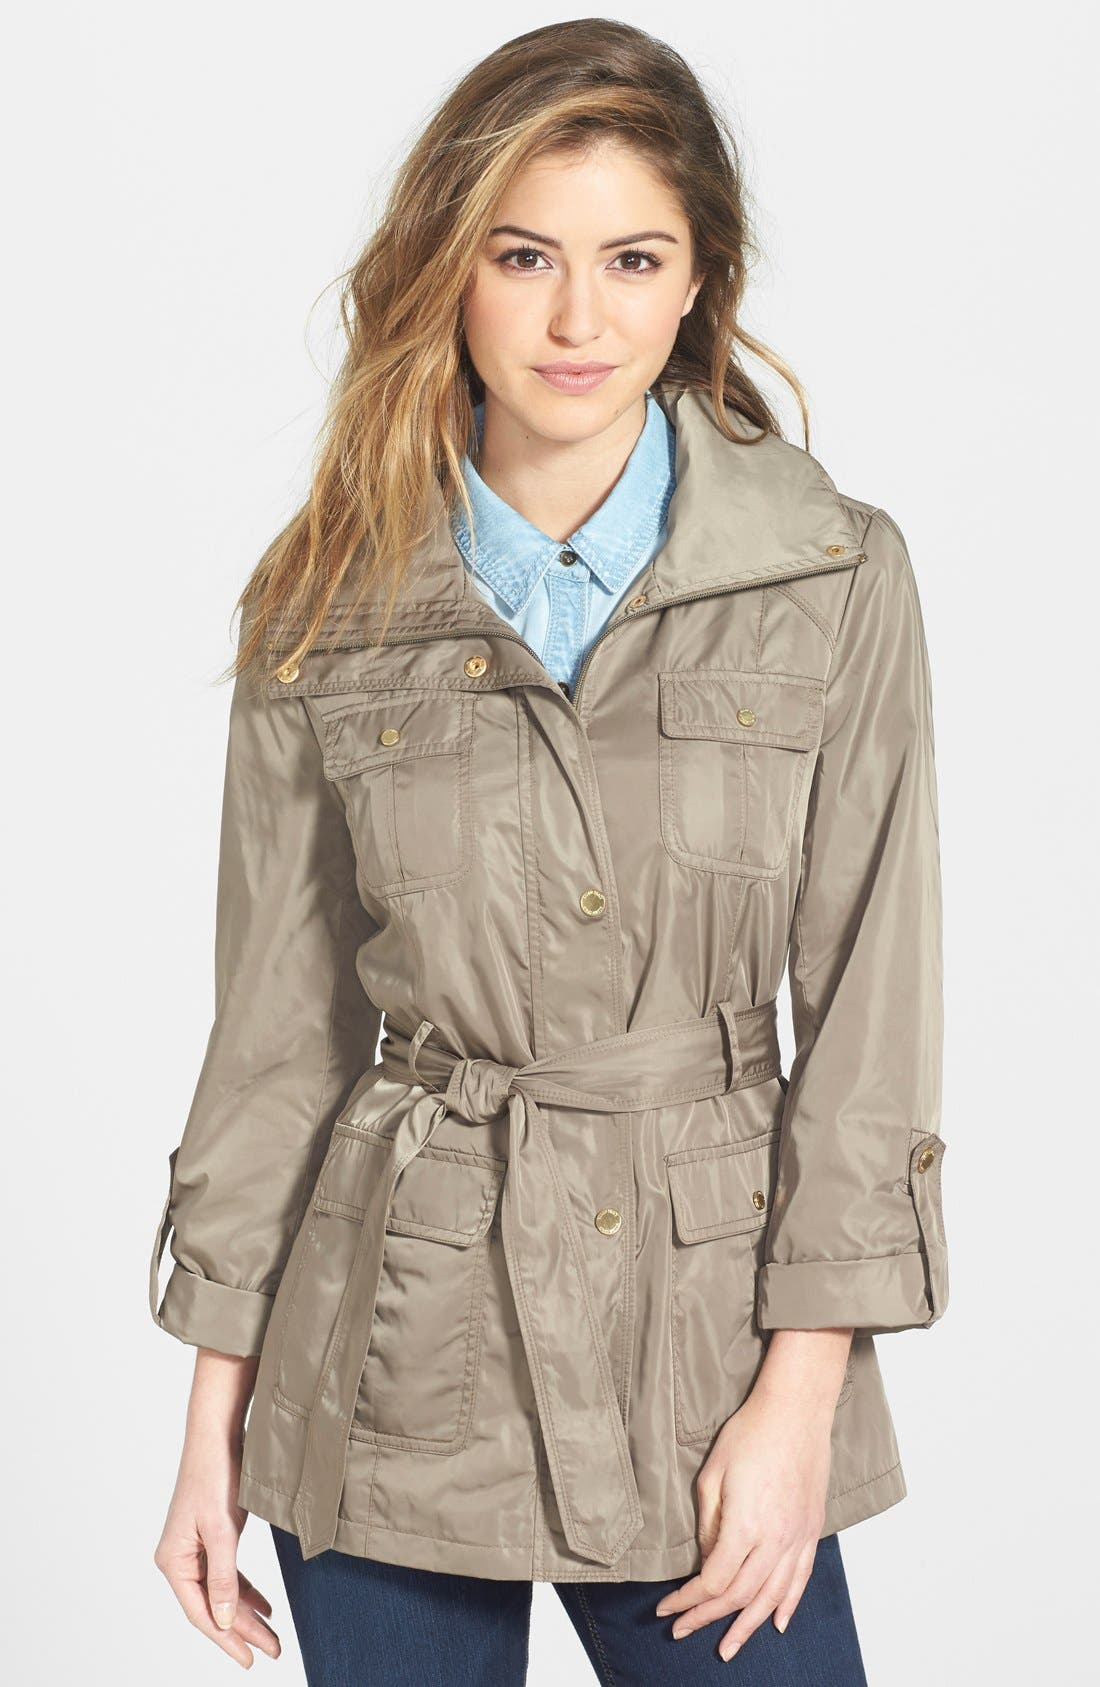 Techno Short Trench Coat,                             Main thumbnail 2, color,